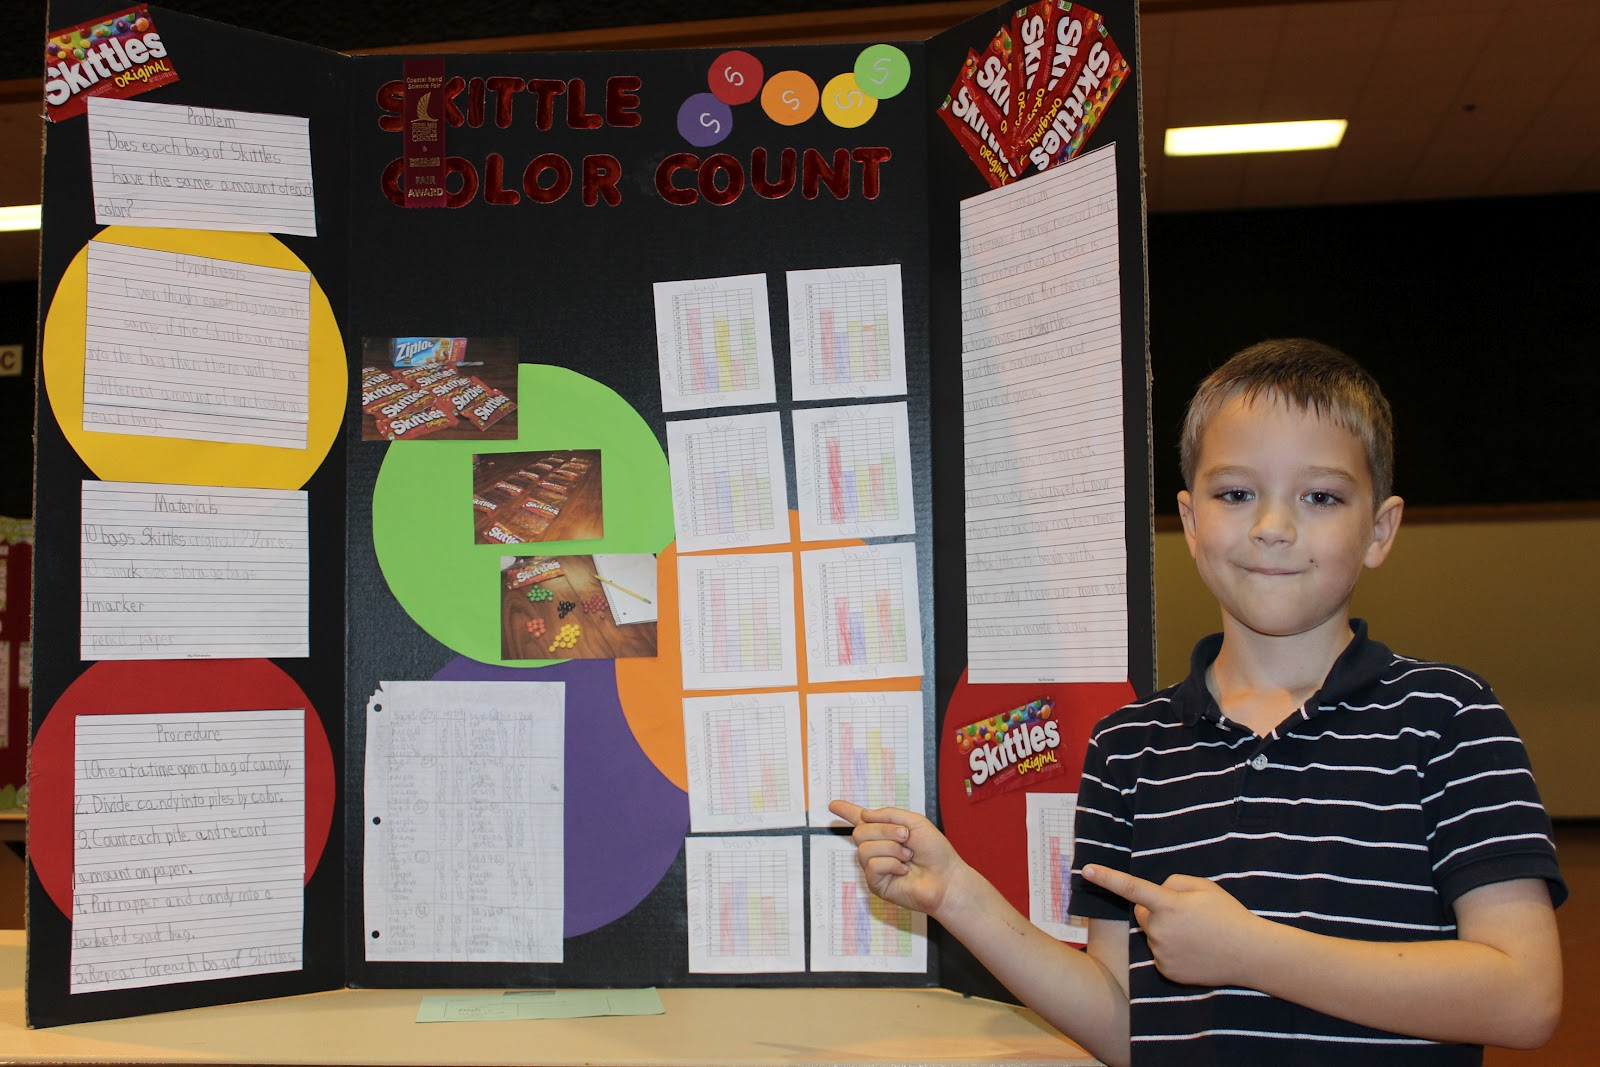 Skittles Science Projects http://cupofdaisies.blogspot.com/2012/03/winning-science-fair-project-william.html